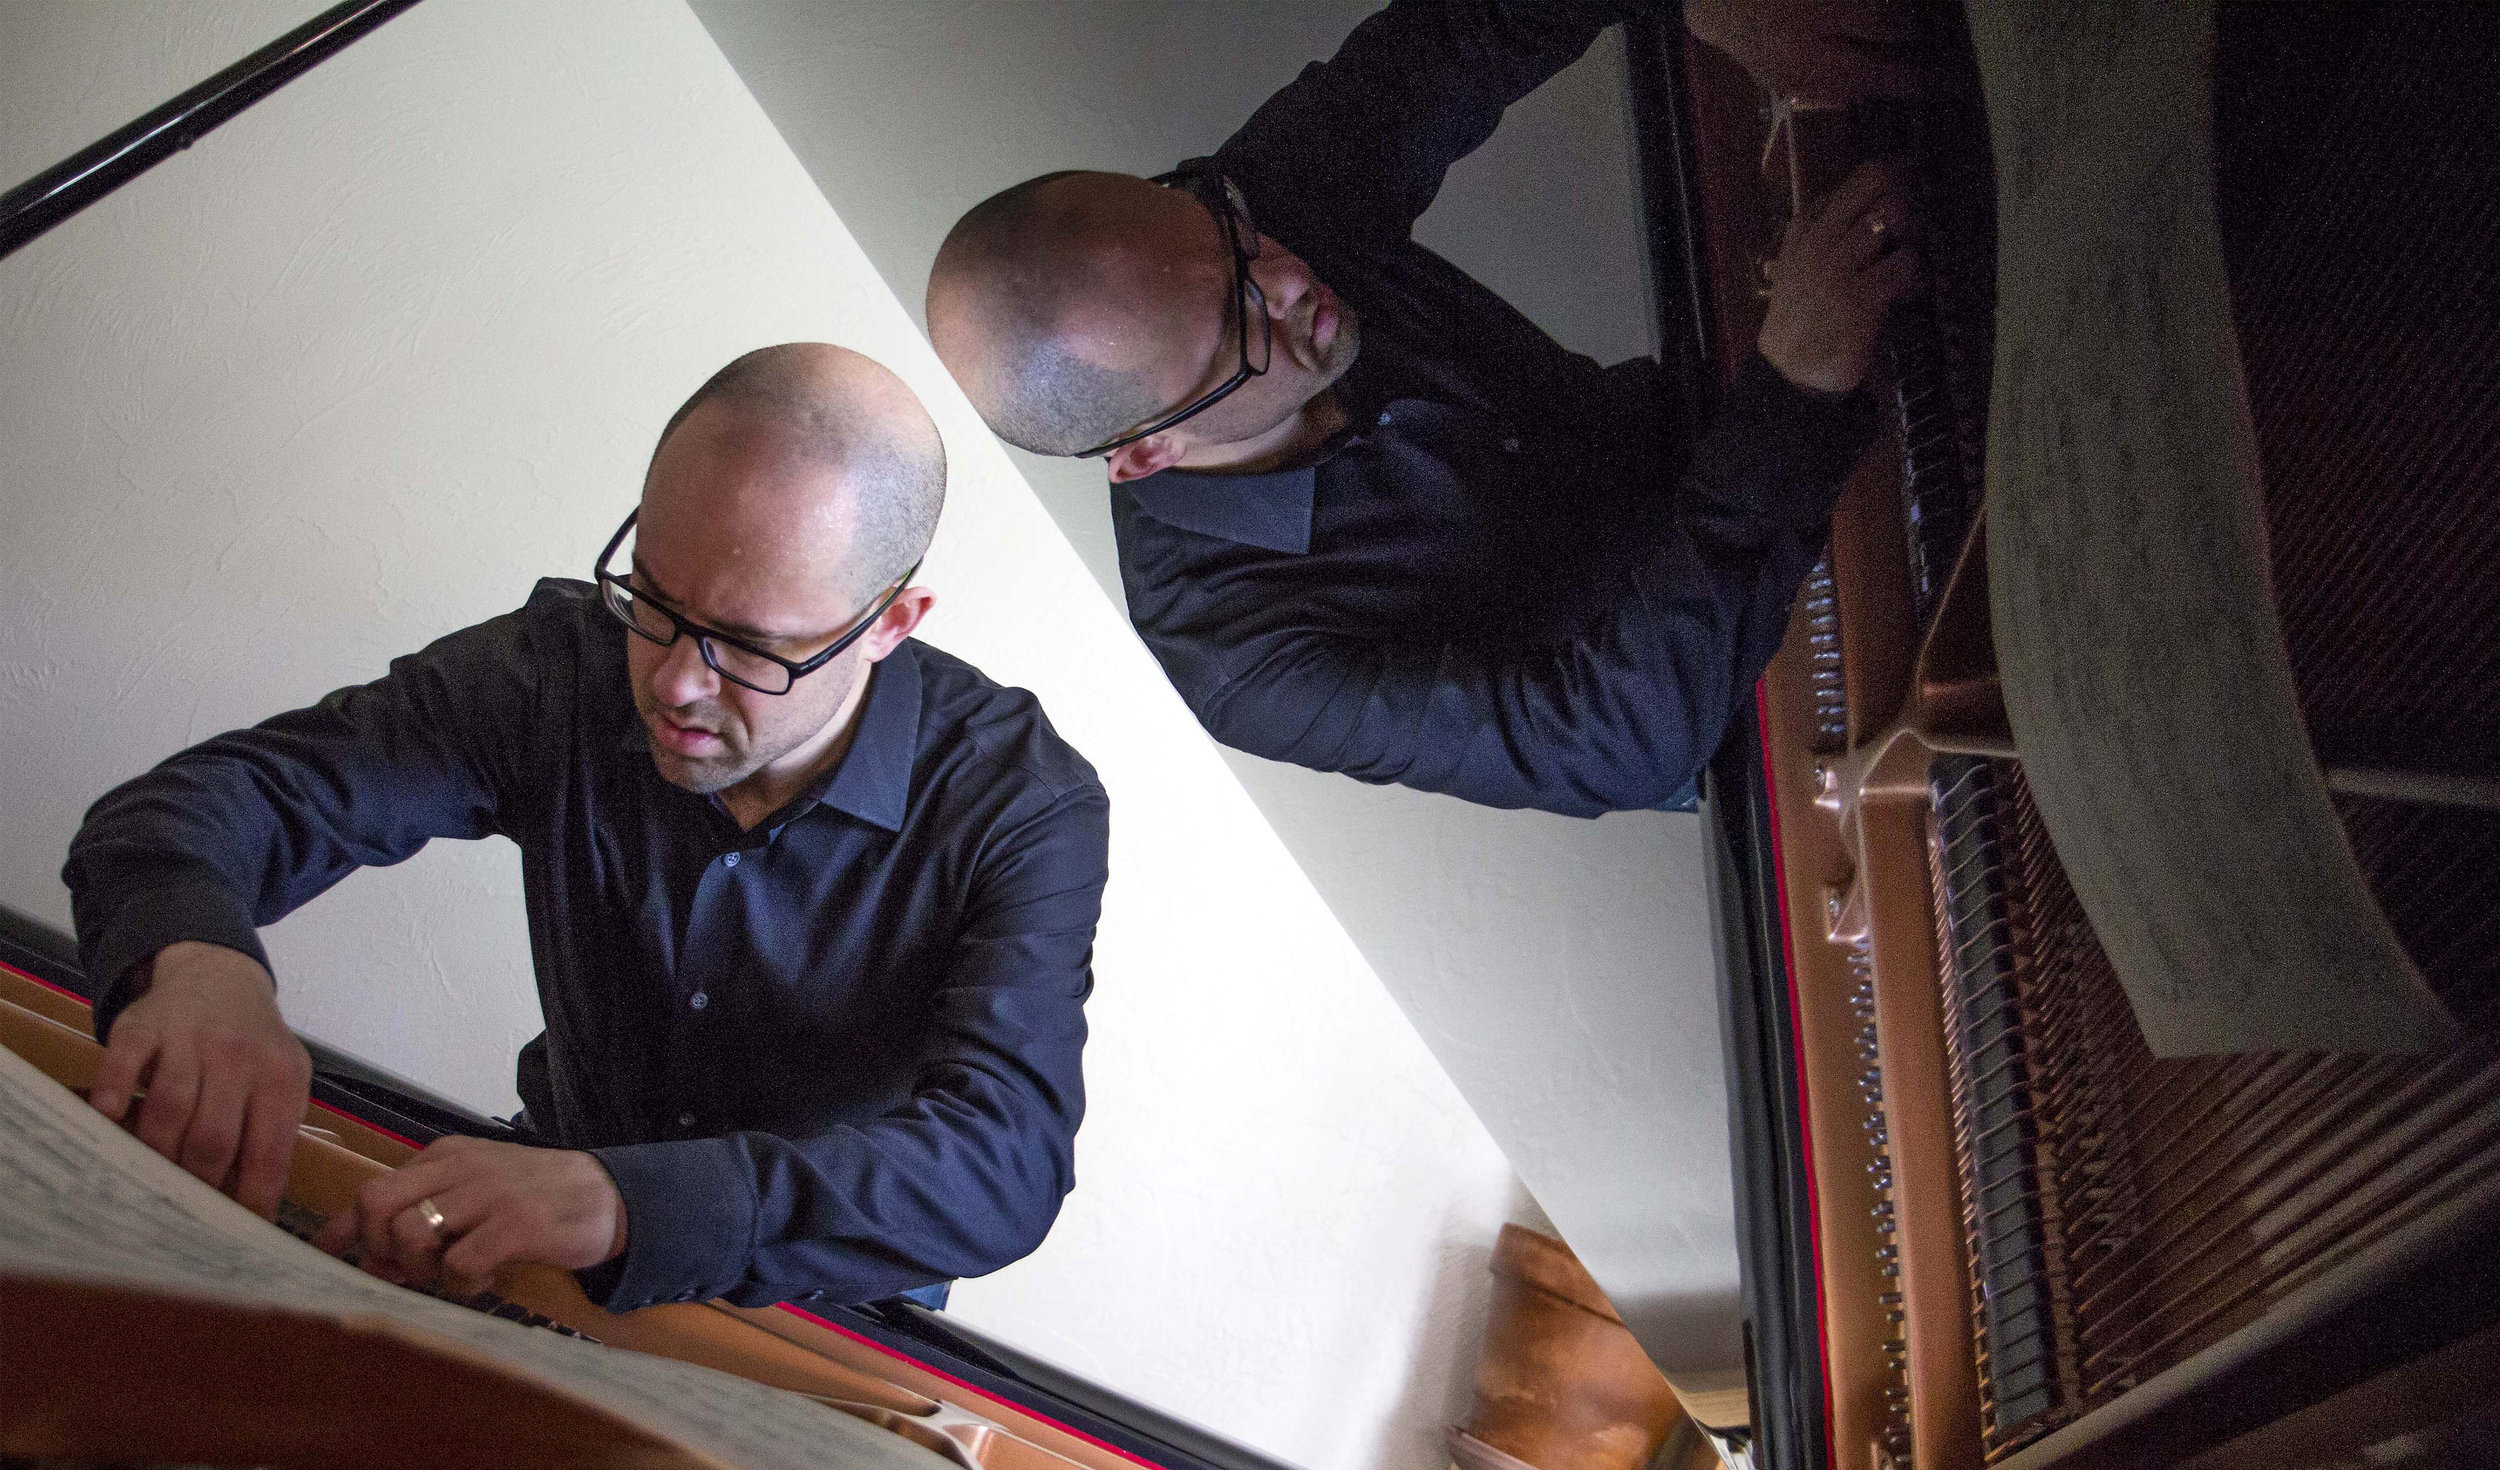 """Pianist Alexander Schwarzkopf plays """"Night-Spell 1- Saggitarius,"""" by the composer George Crumb. The piece involves plucking on the strings of his piano, whistling and drumming on the piano."""